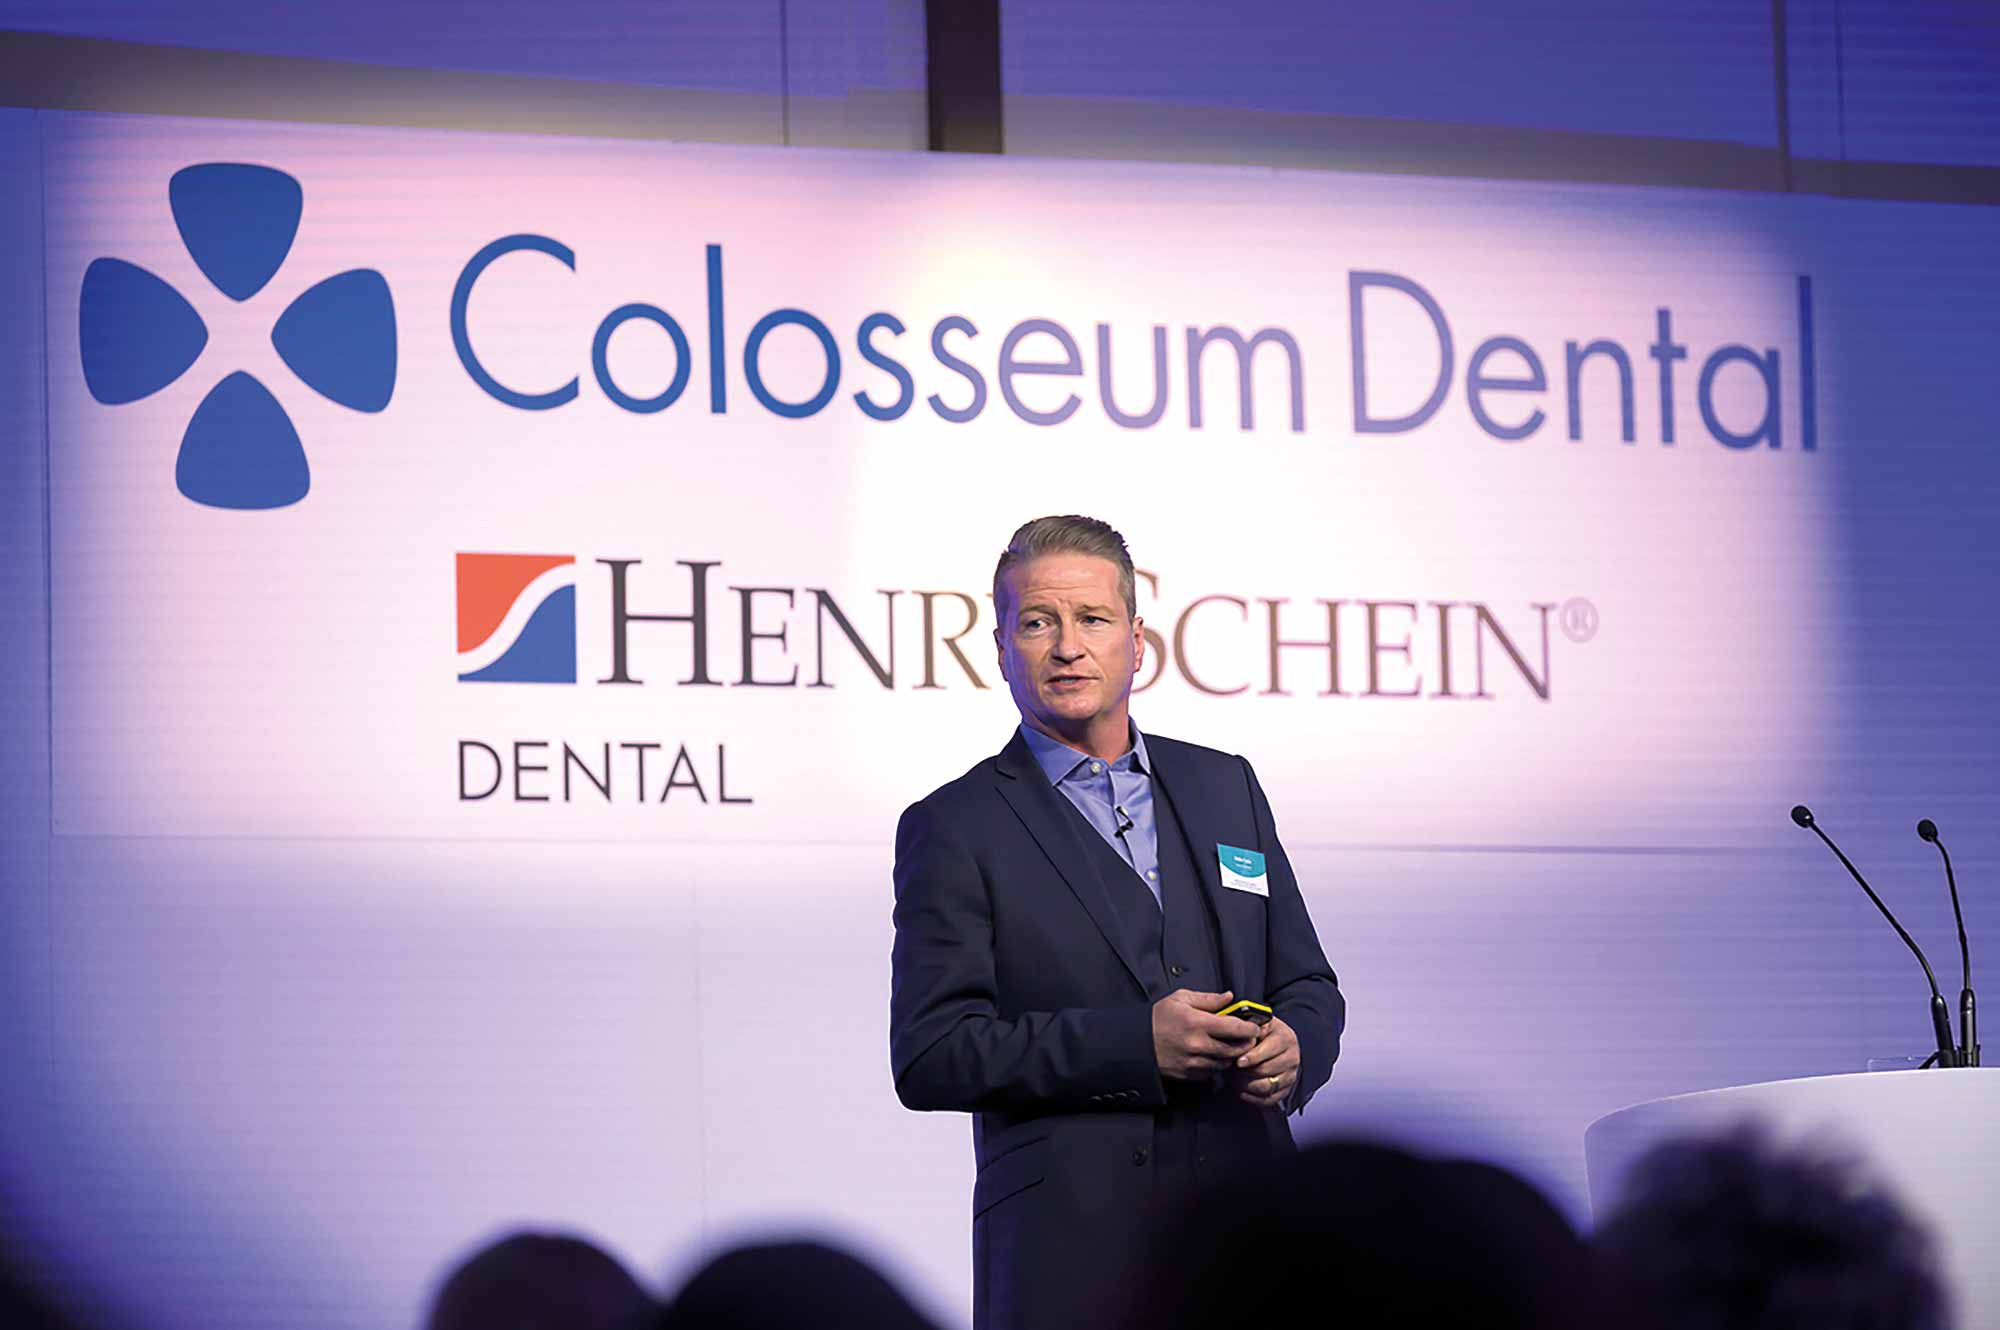 Colosseum Dental UK